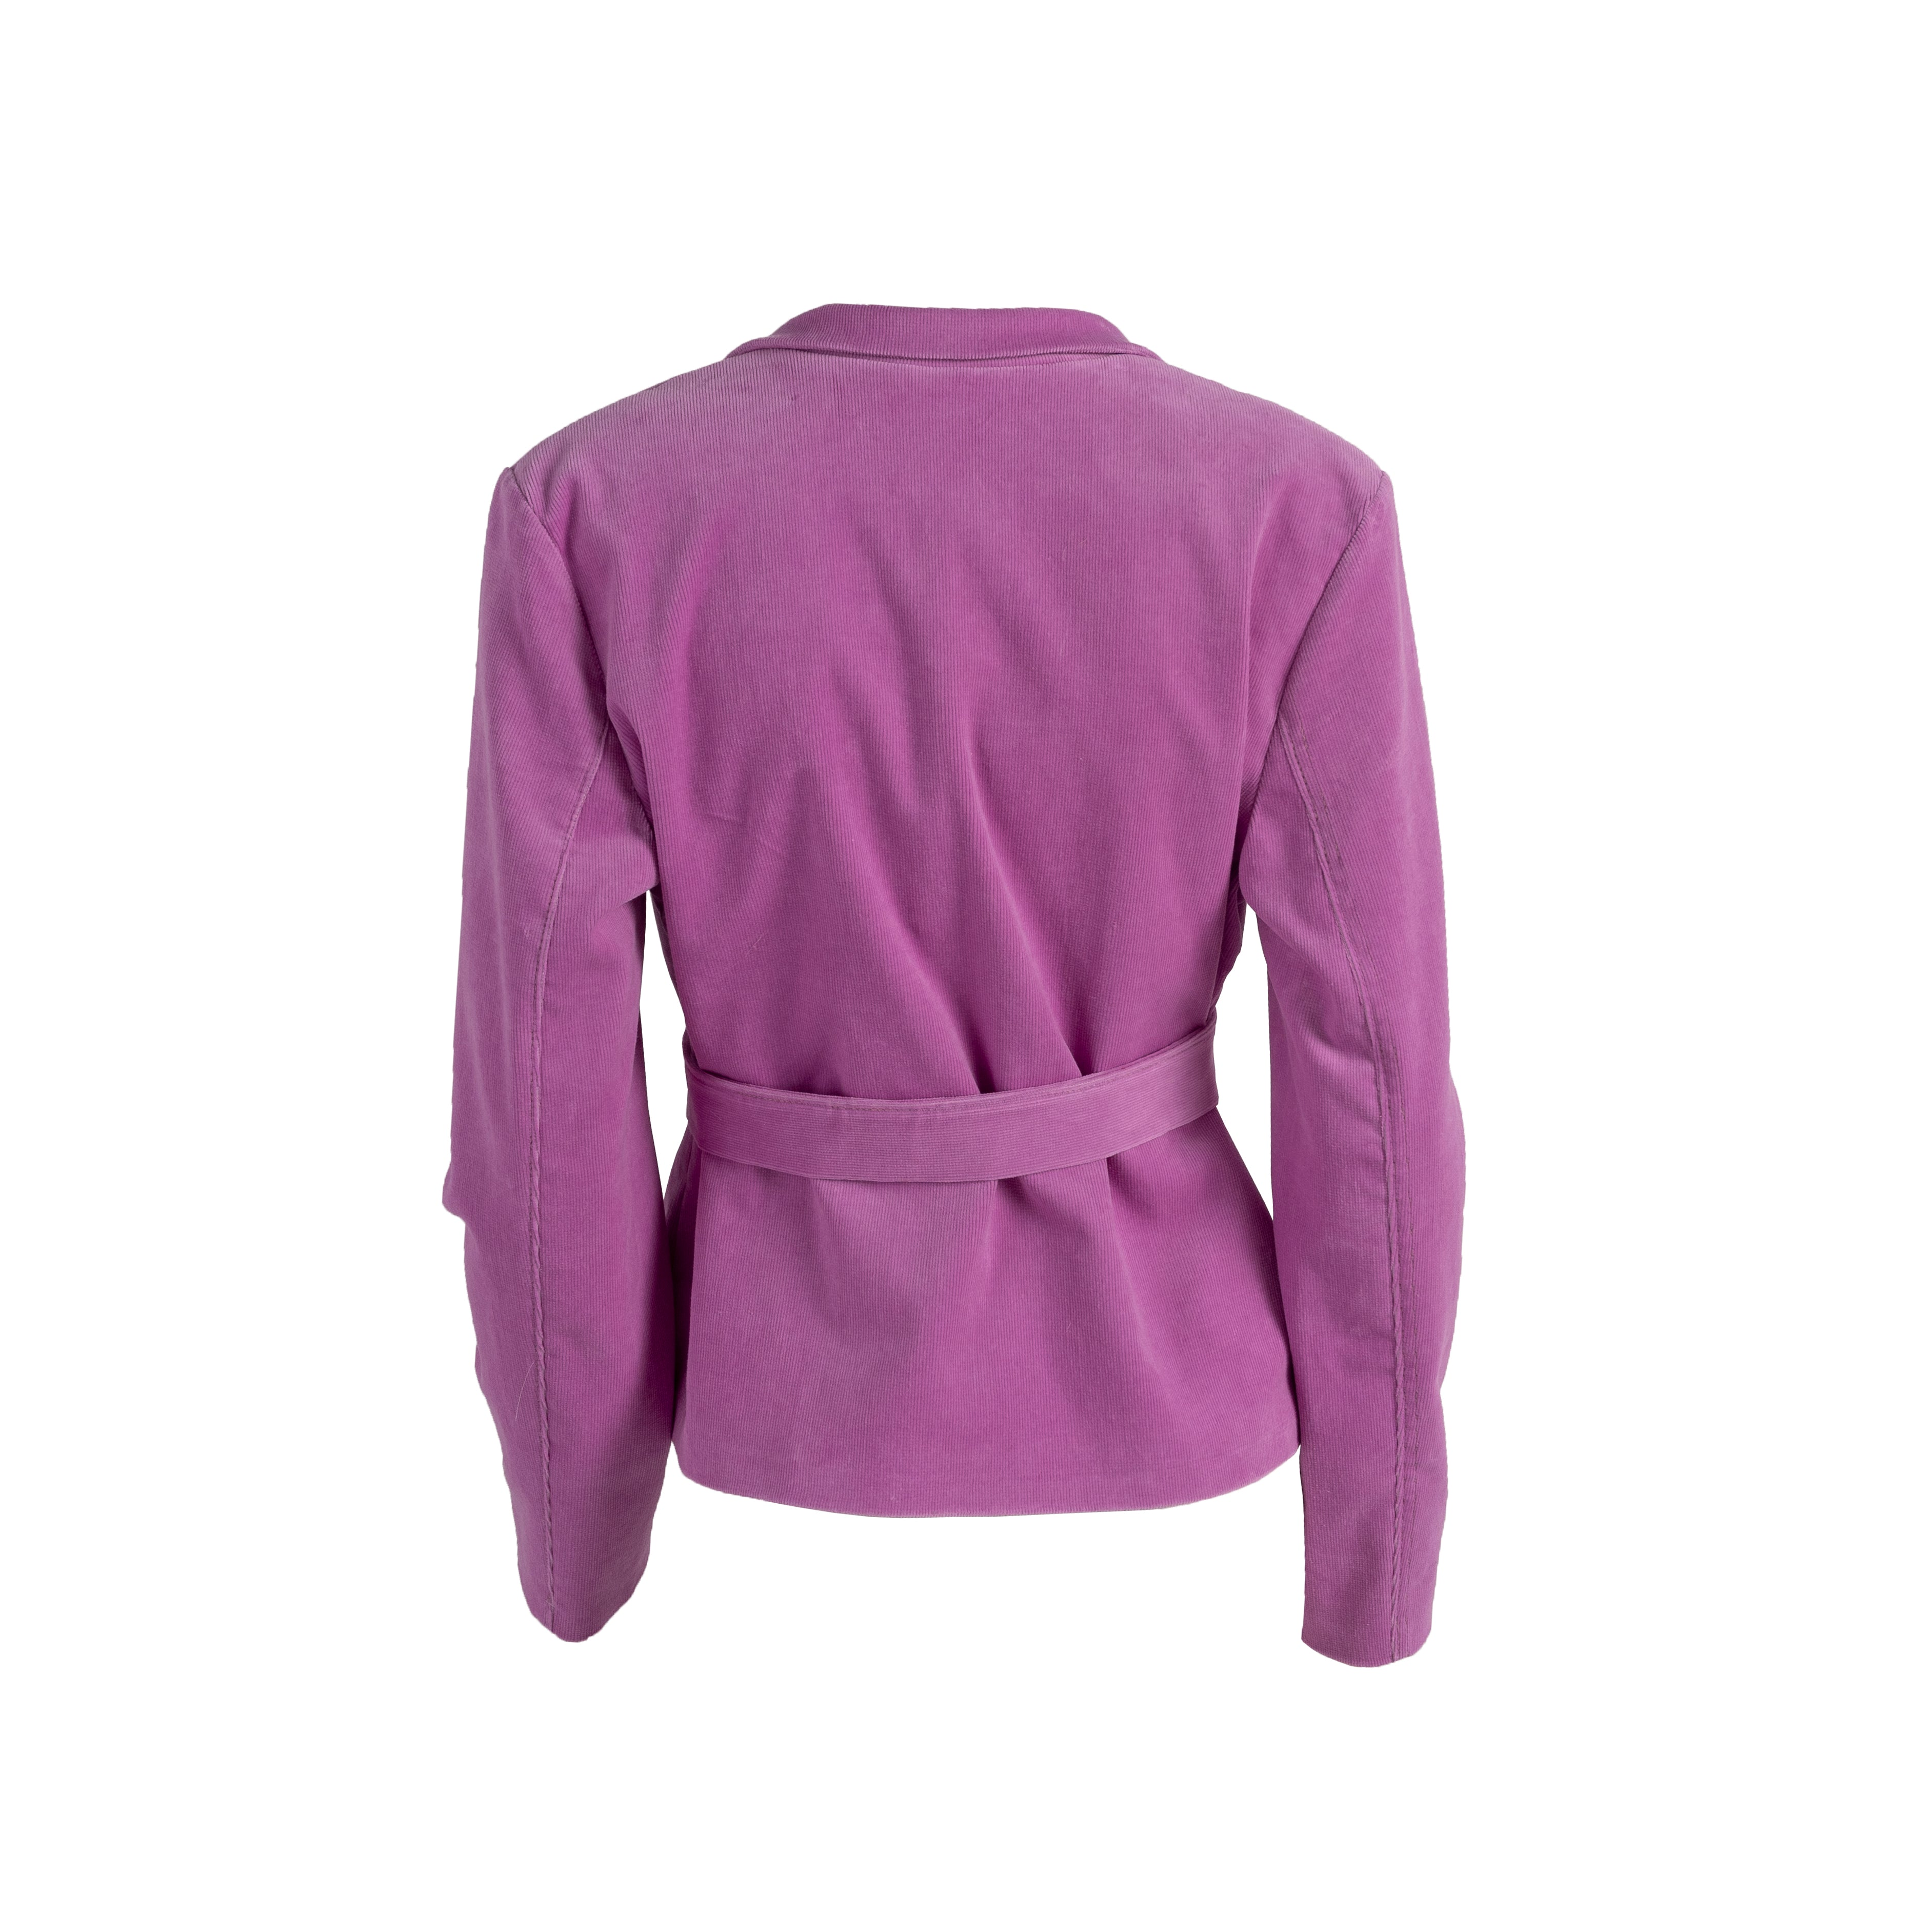 Ribbed Corduroy Blazer With Pockets Pink